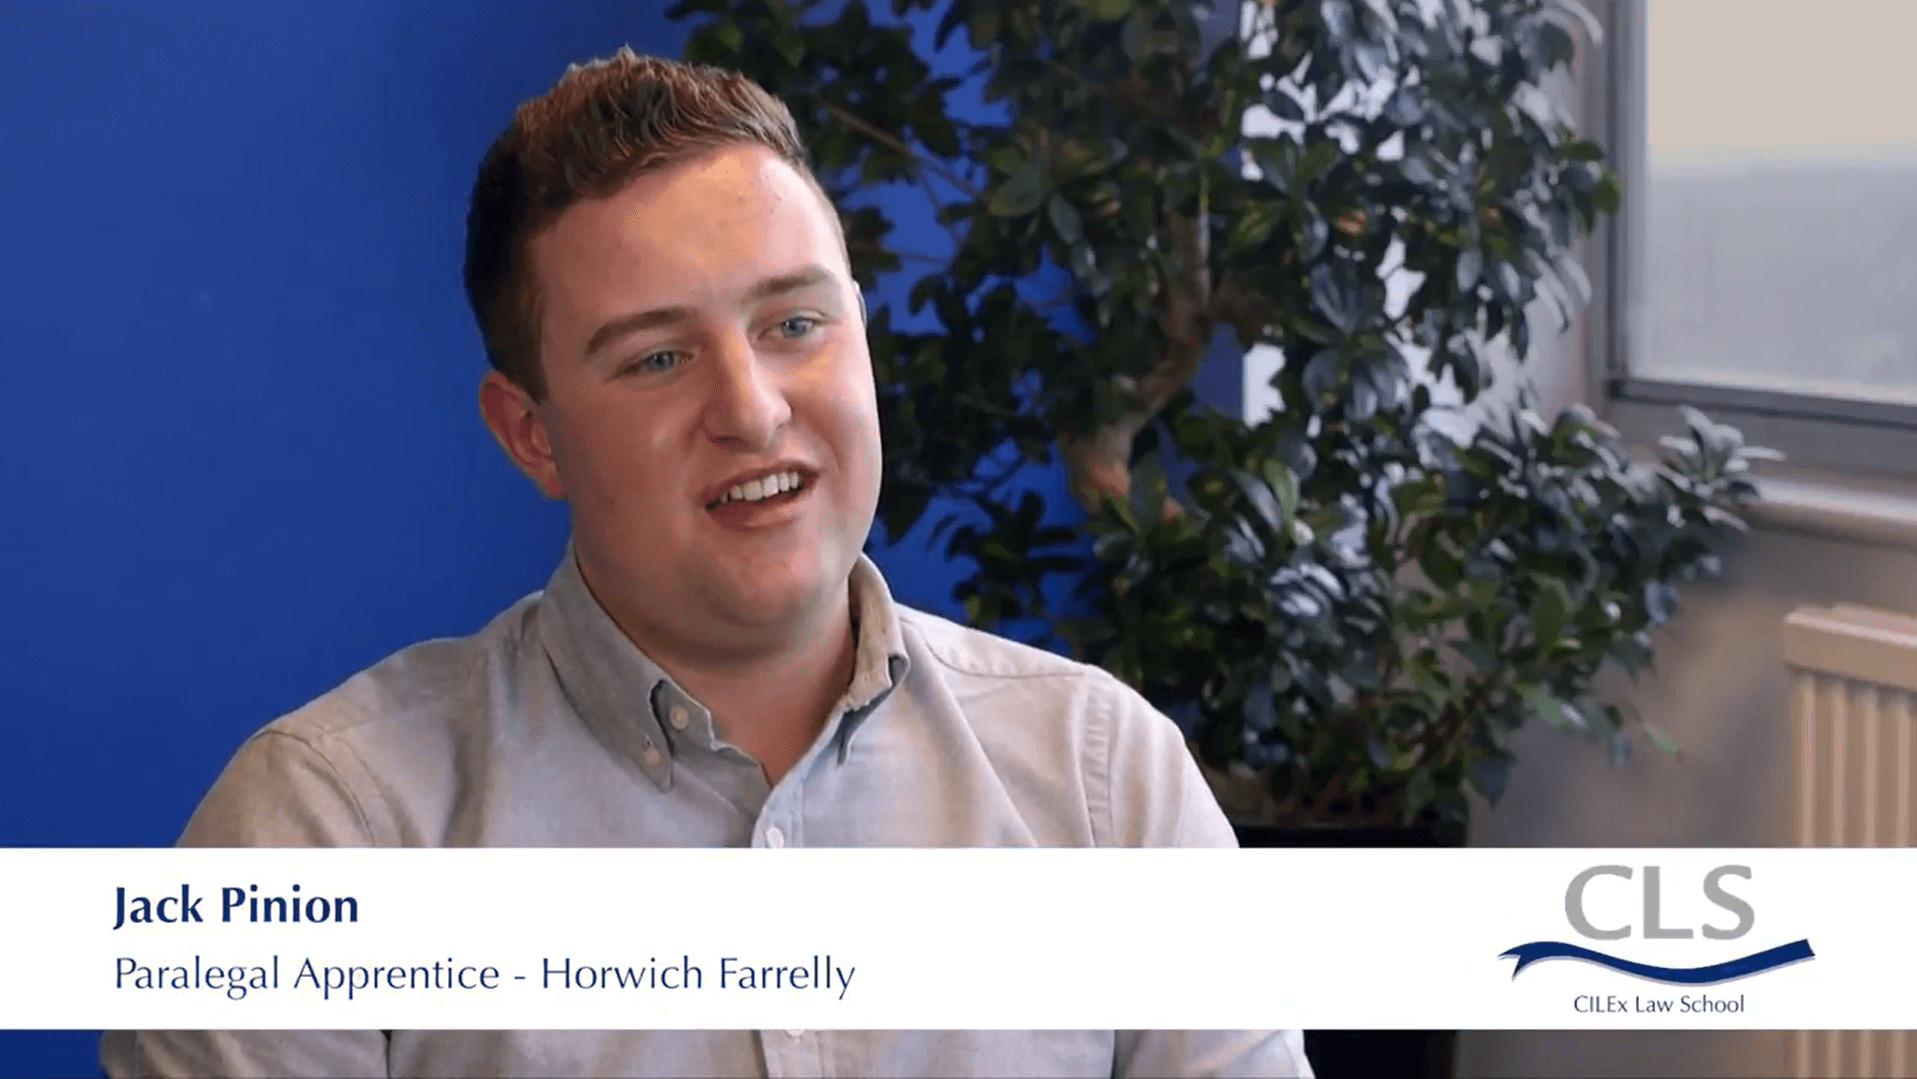 Apprentice speaks about their experience working in a law firm